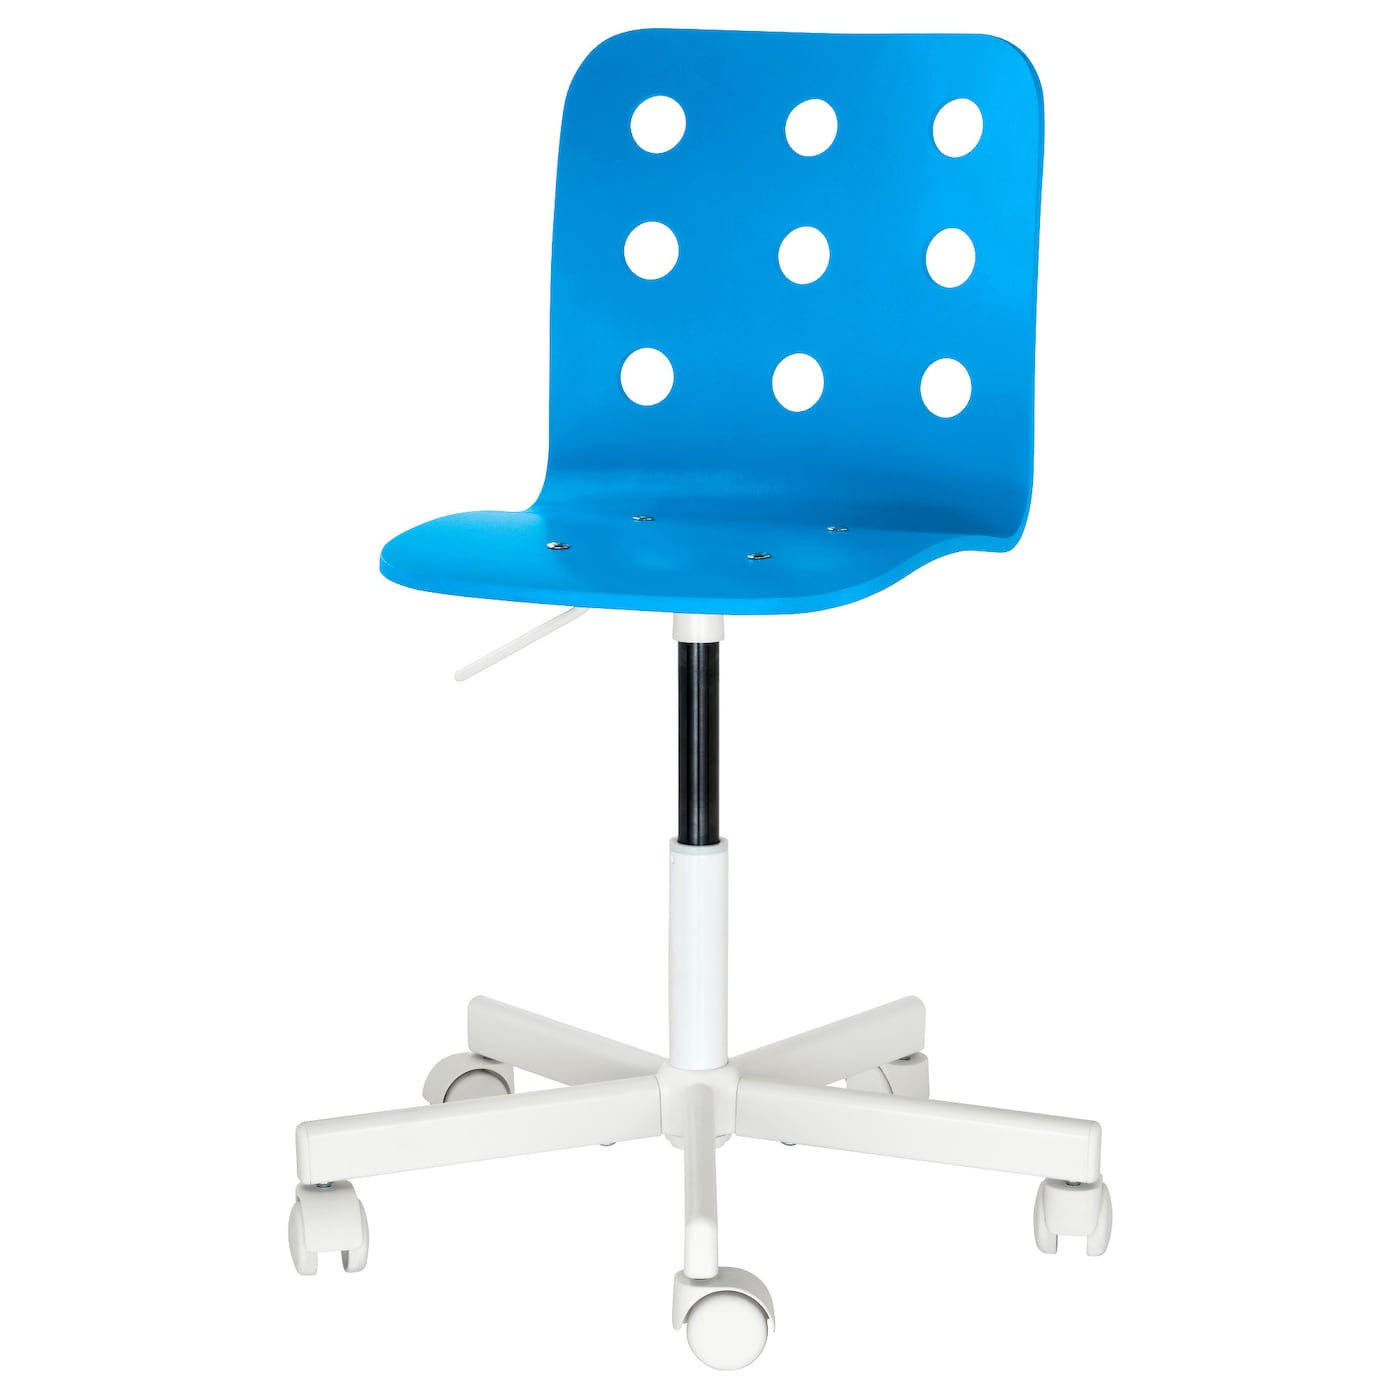 Jules children 39 s desk chair blue white ikea for Chaise de bureau ikea